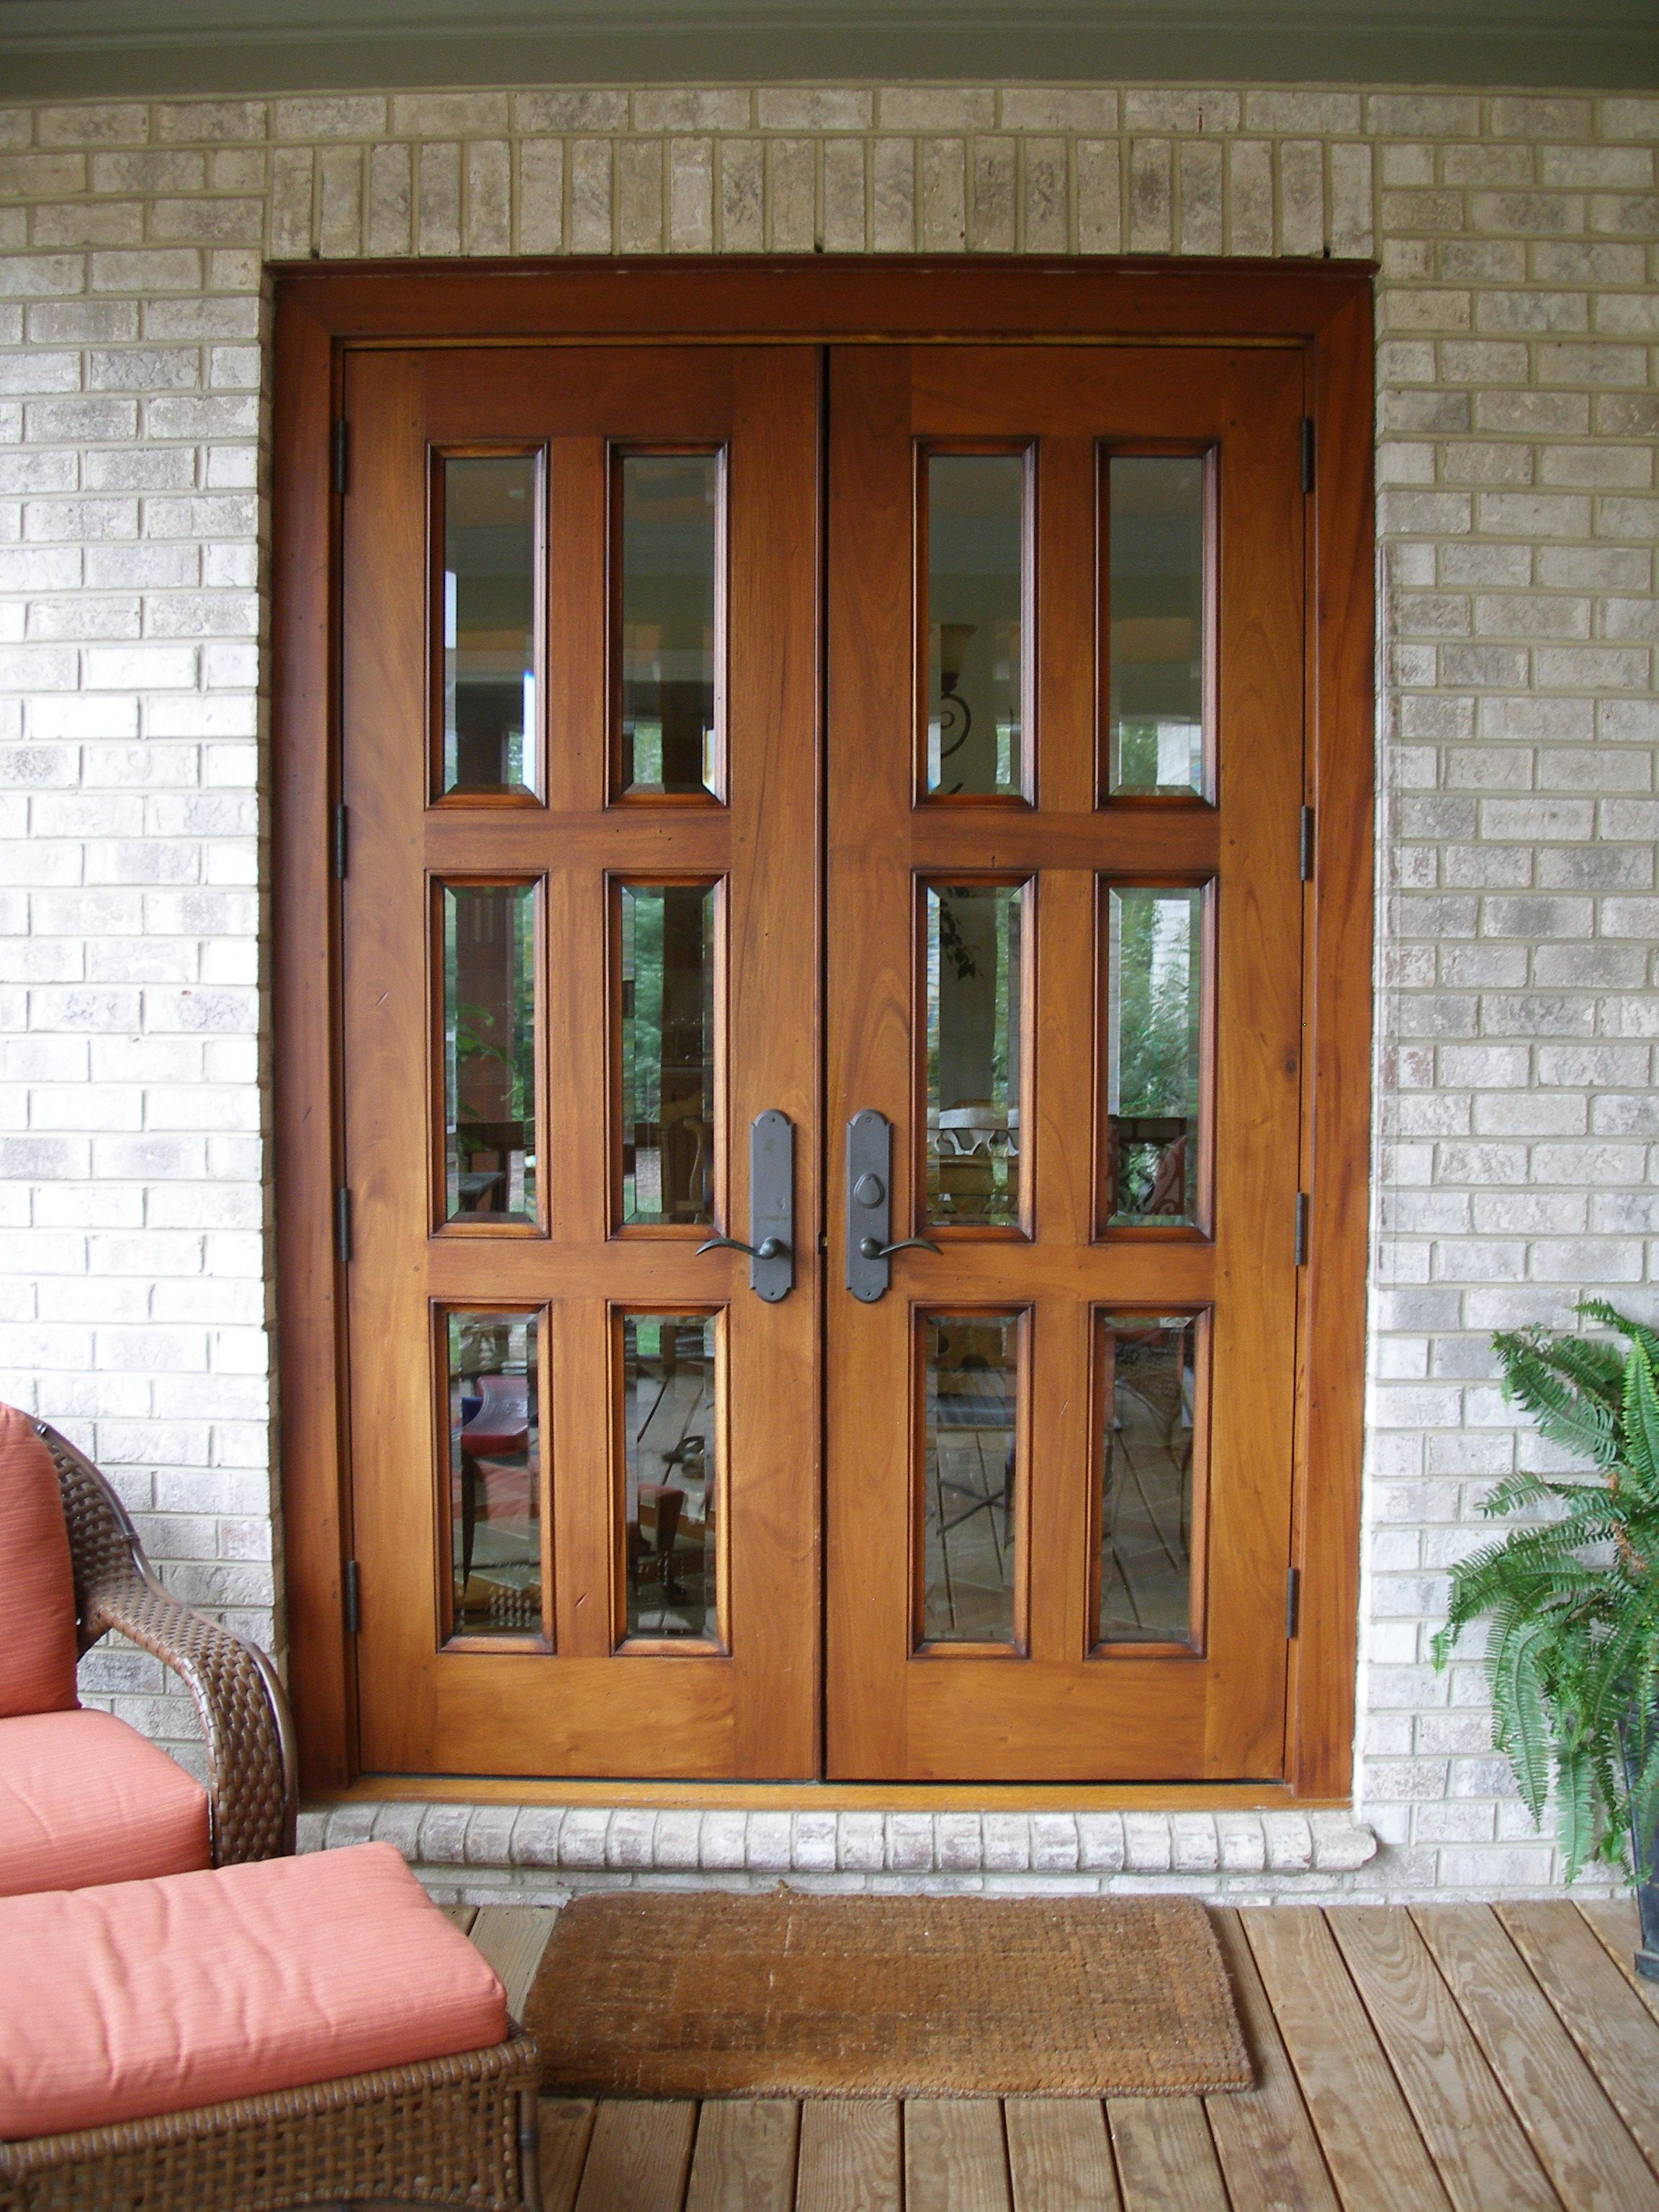 1 clean wood french doors exterior lowes vinyl vs wood french french doors with glass panels above not one of them ever appear quite as lovely as when theres glass entailed while there rubansaba